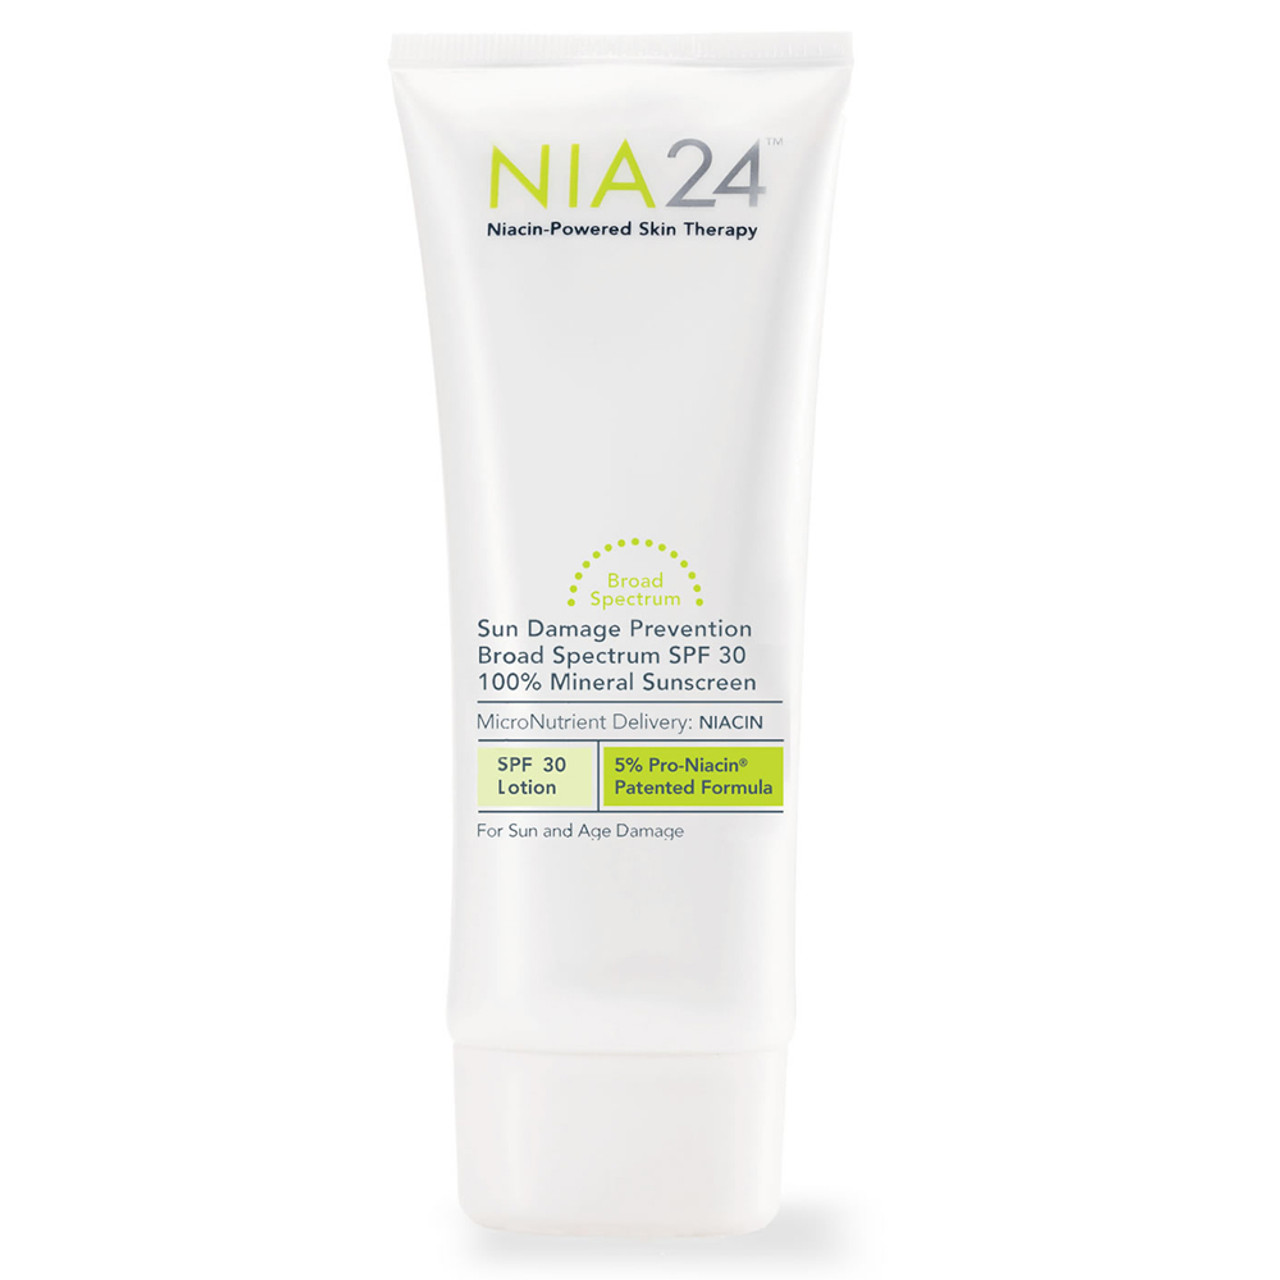 NIA24 Sun Damage Prevention Broad Spectrum SPF 30 100% Mineral Sunscreen SPF 30